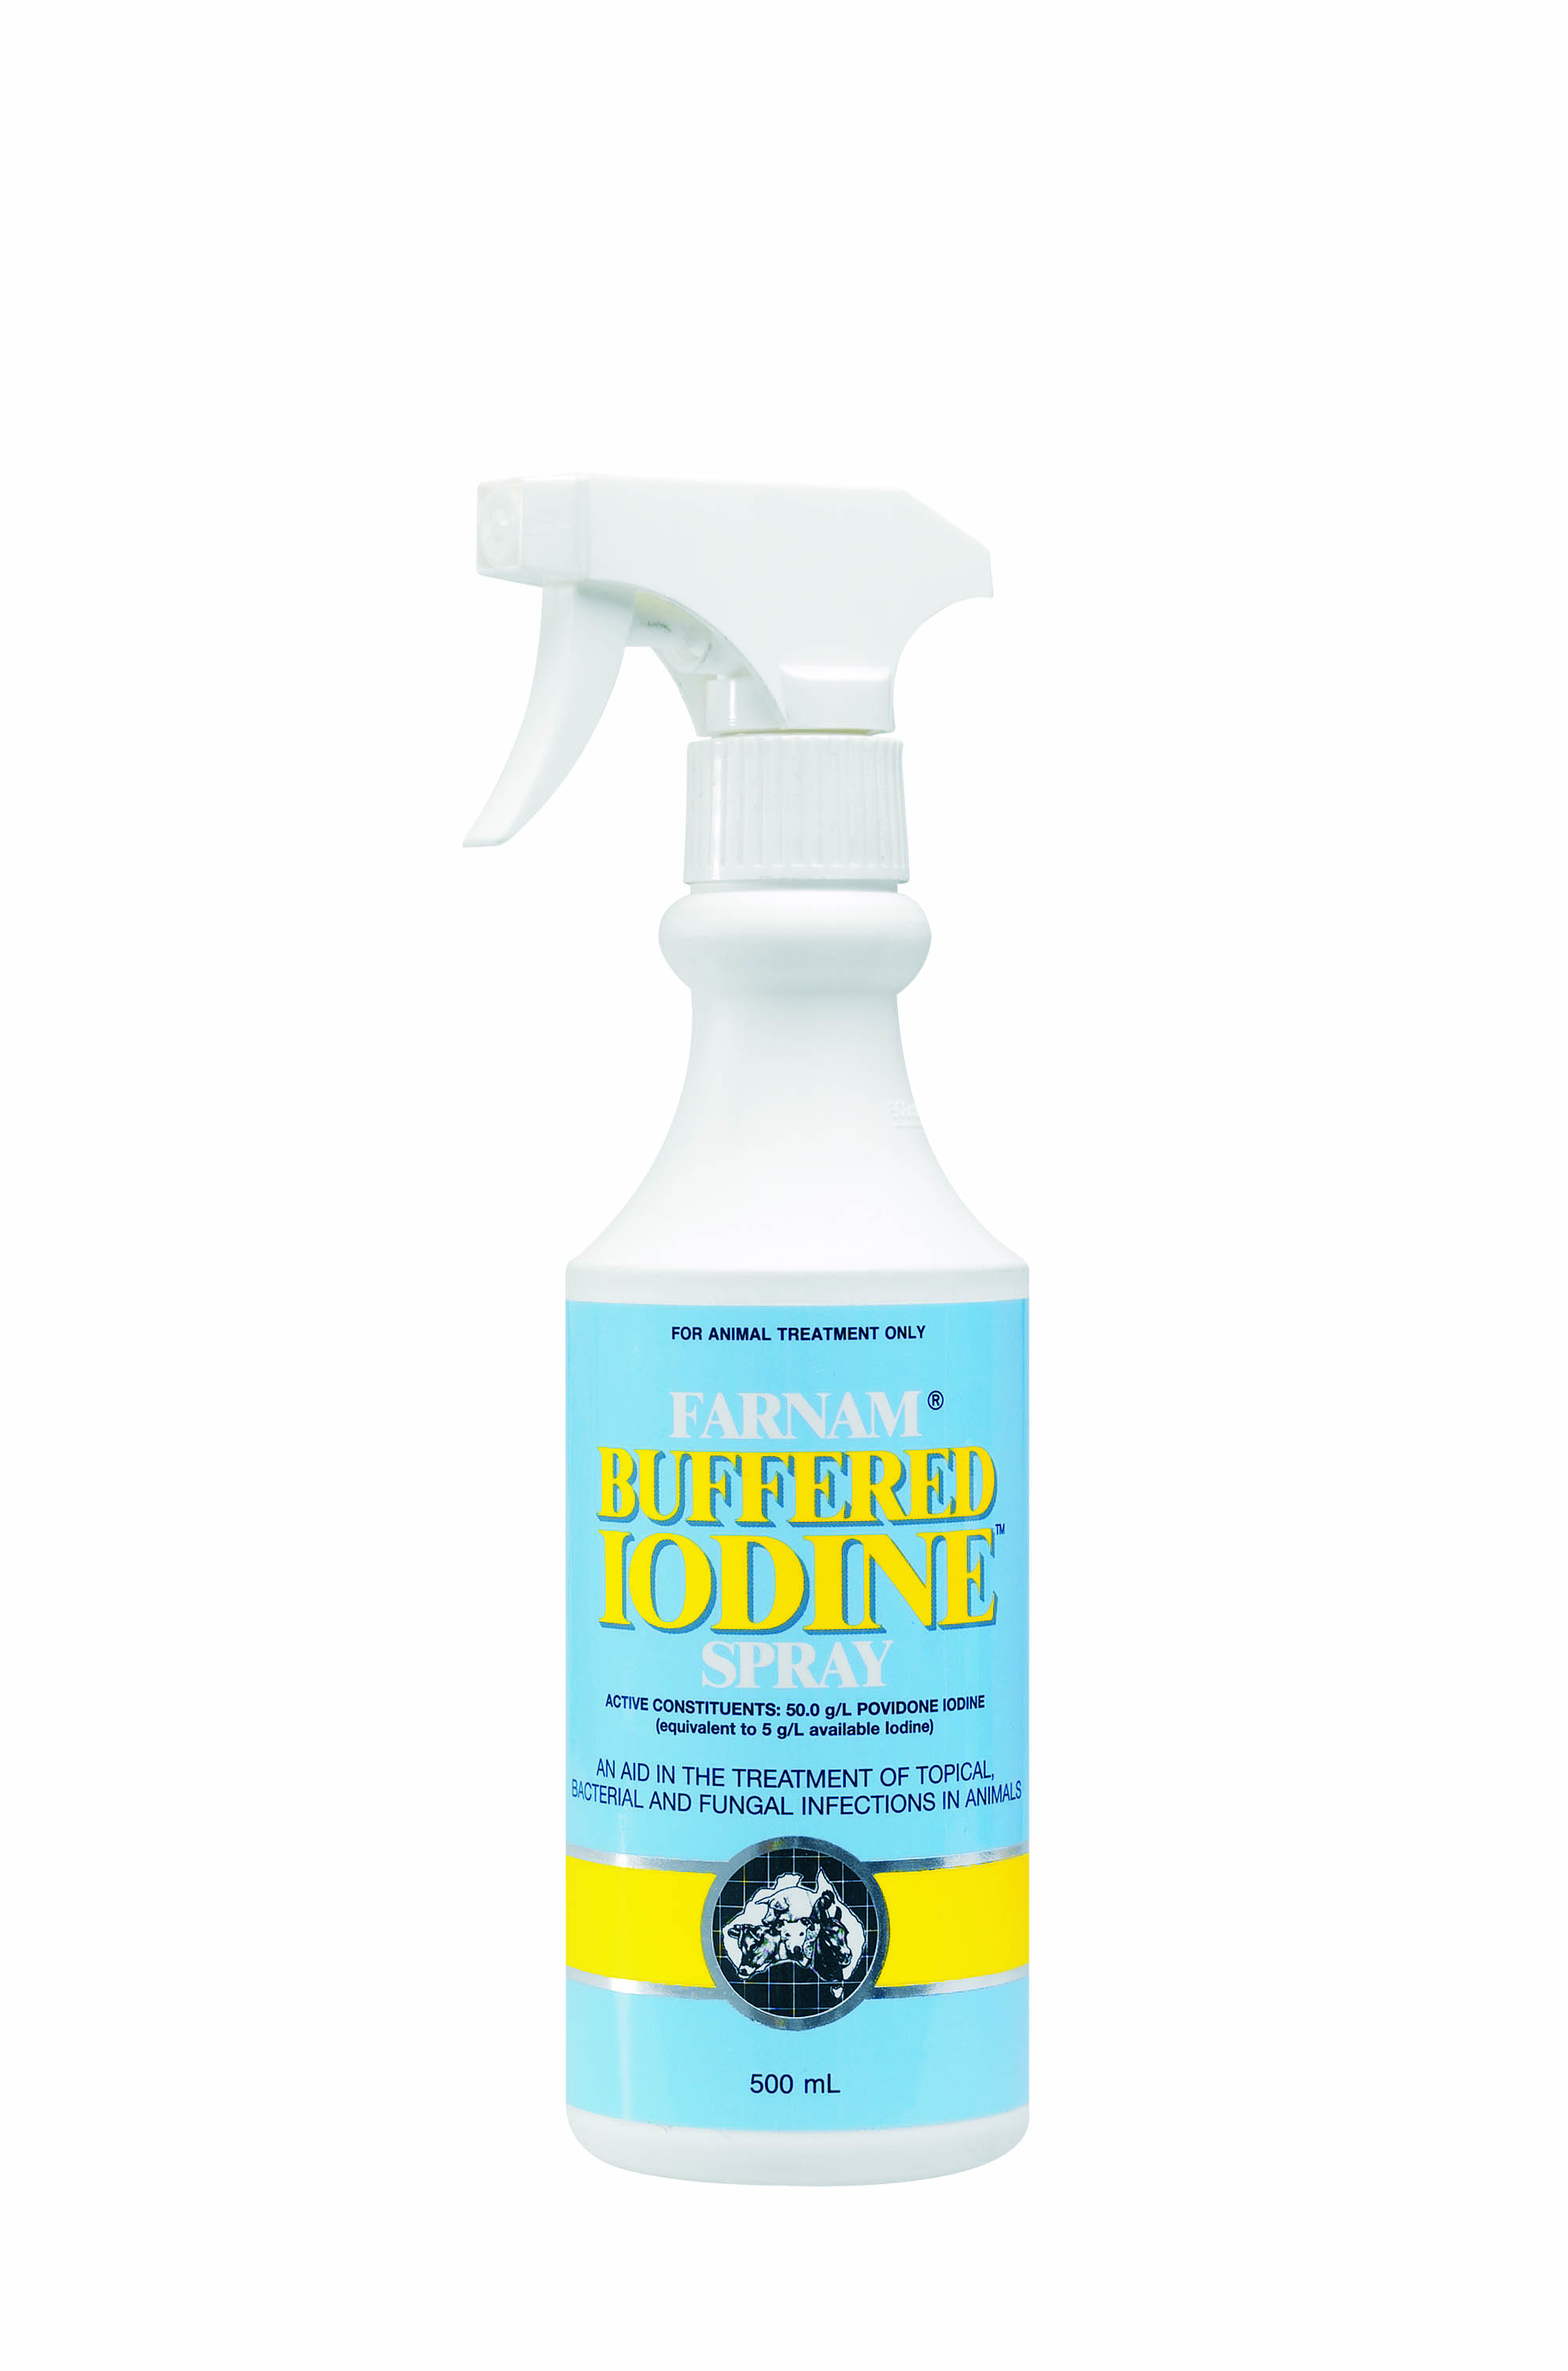 BUFFERED IODINE